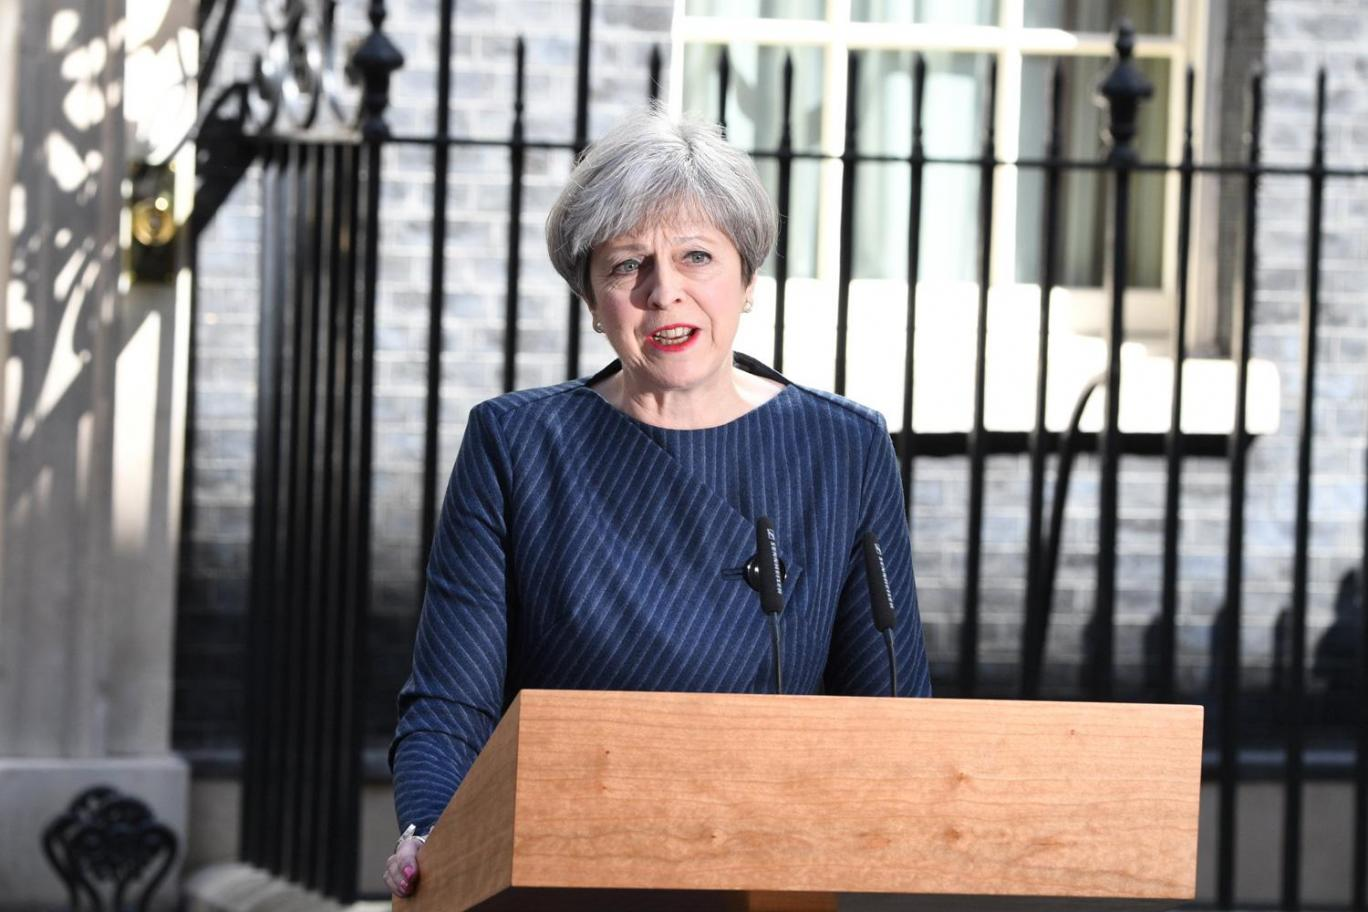 Theresa May just called for a snap General Election on 8th June